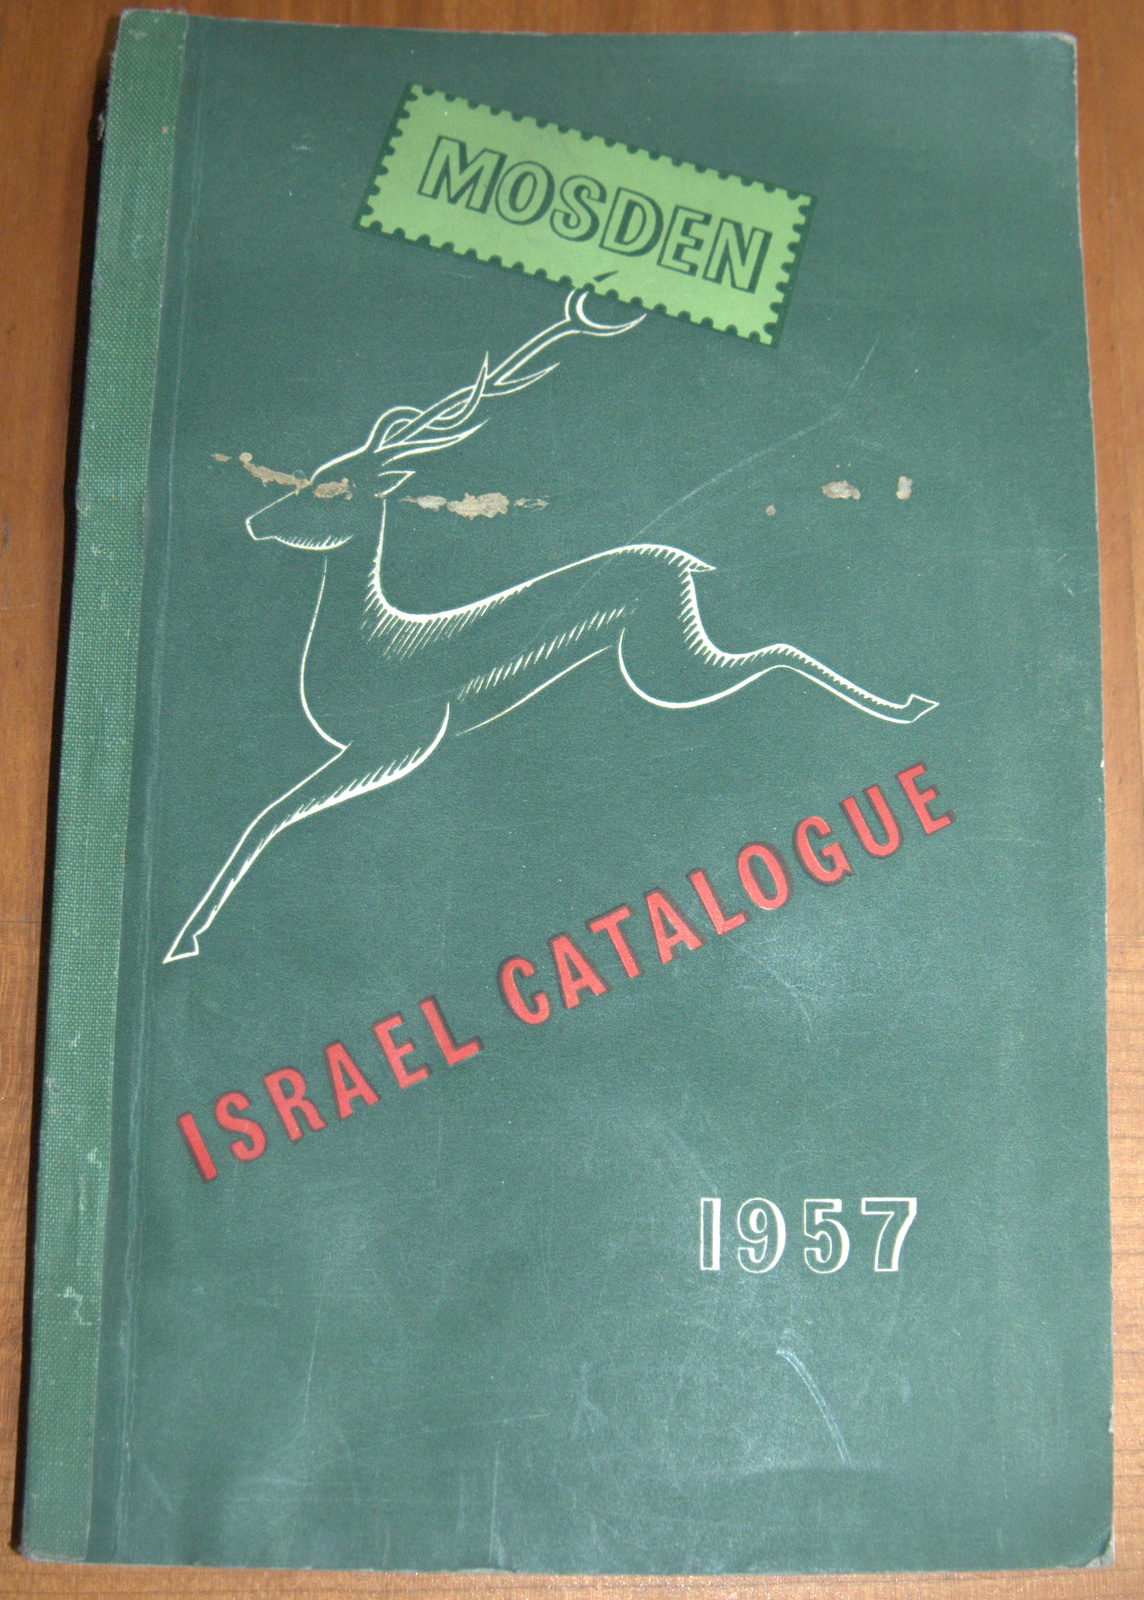 Mosden Israel Philately Catalogue 1957 Stamps Postmarks Covers Illustrated Book